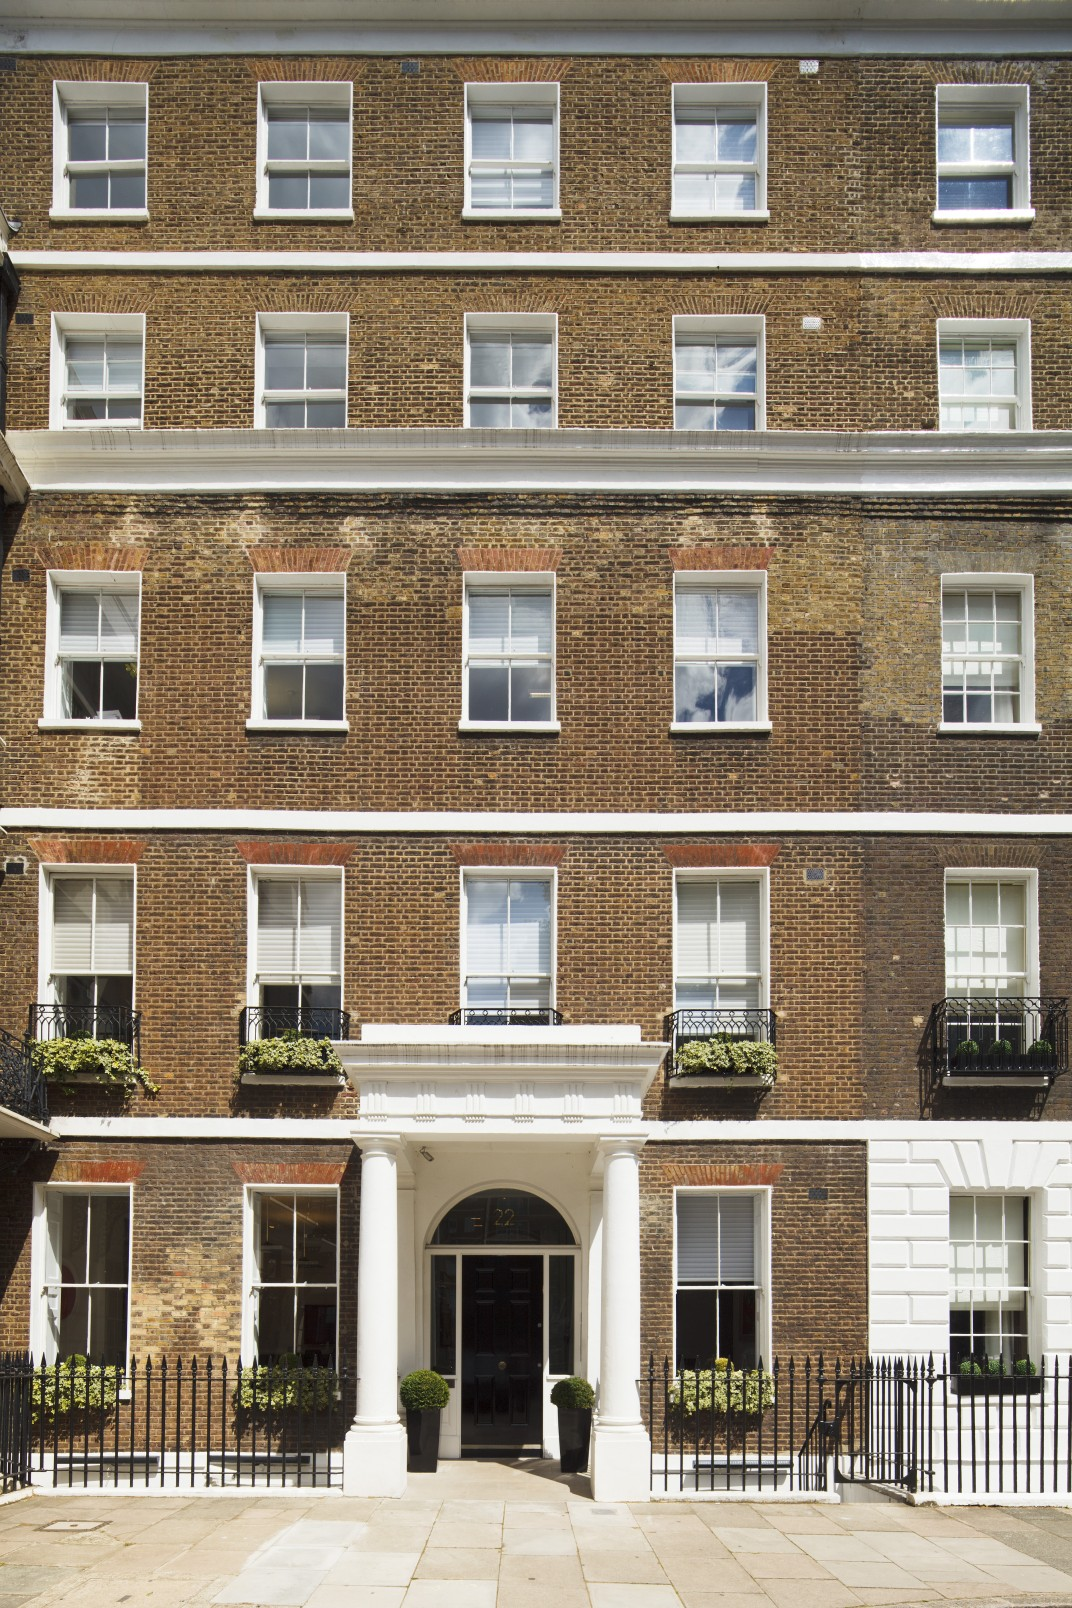 Images for Manchester Square, Marylebone, W1U 3PT EAID:3928049530 BID:2